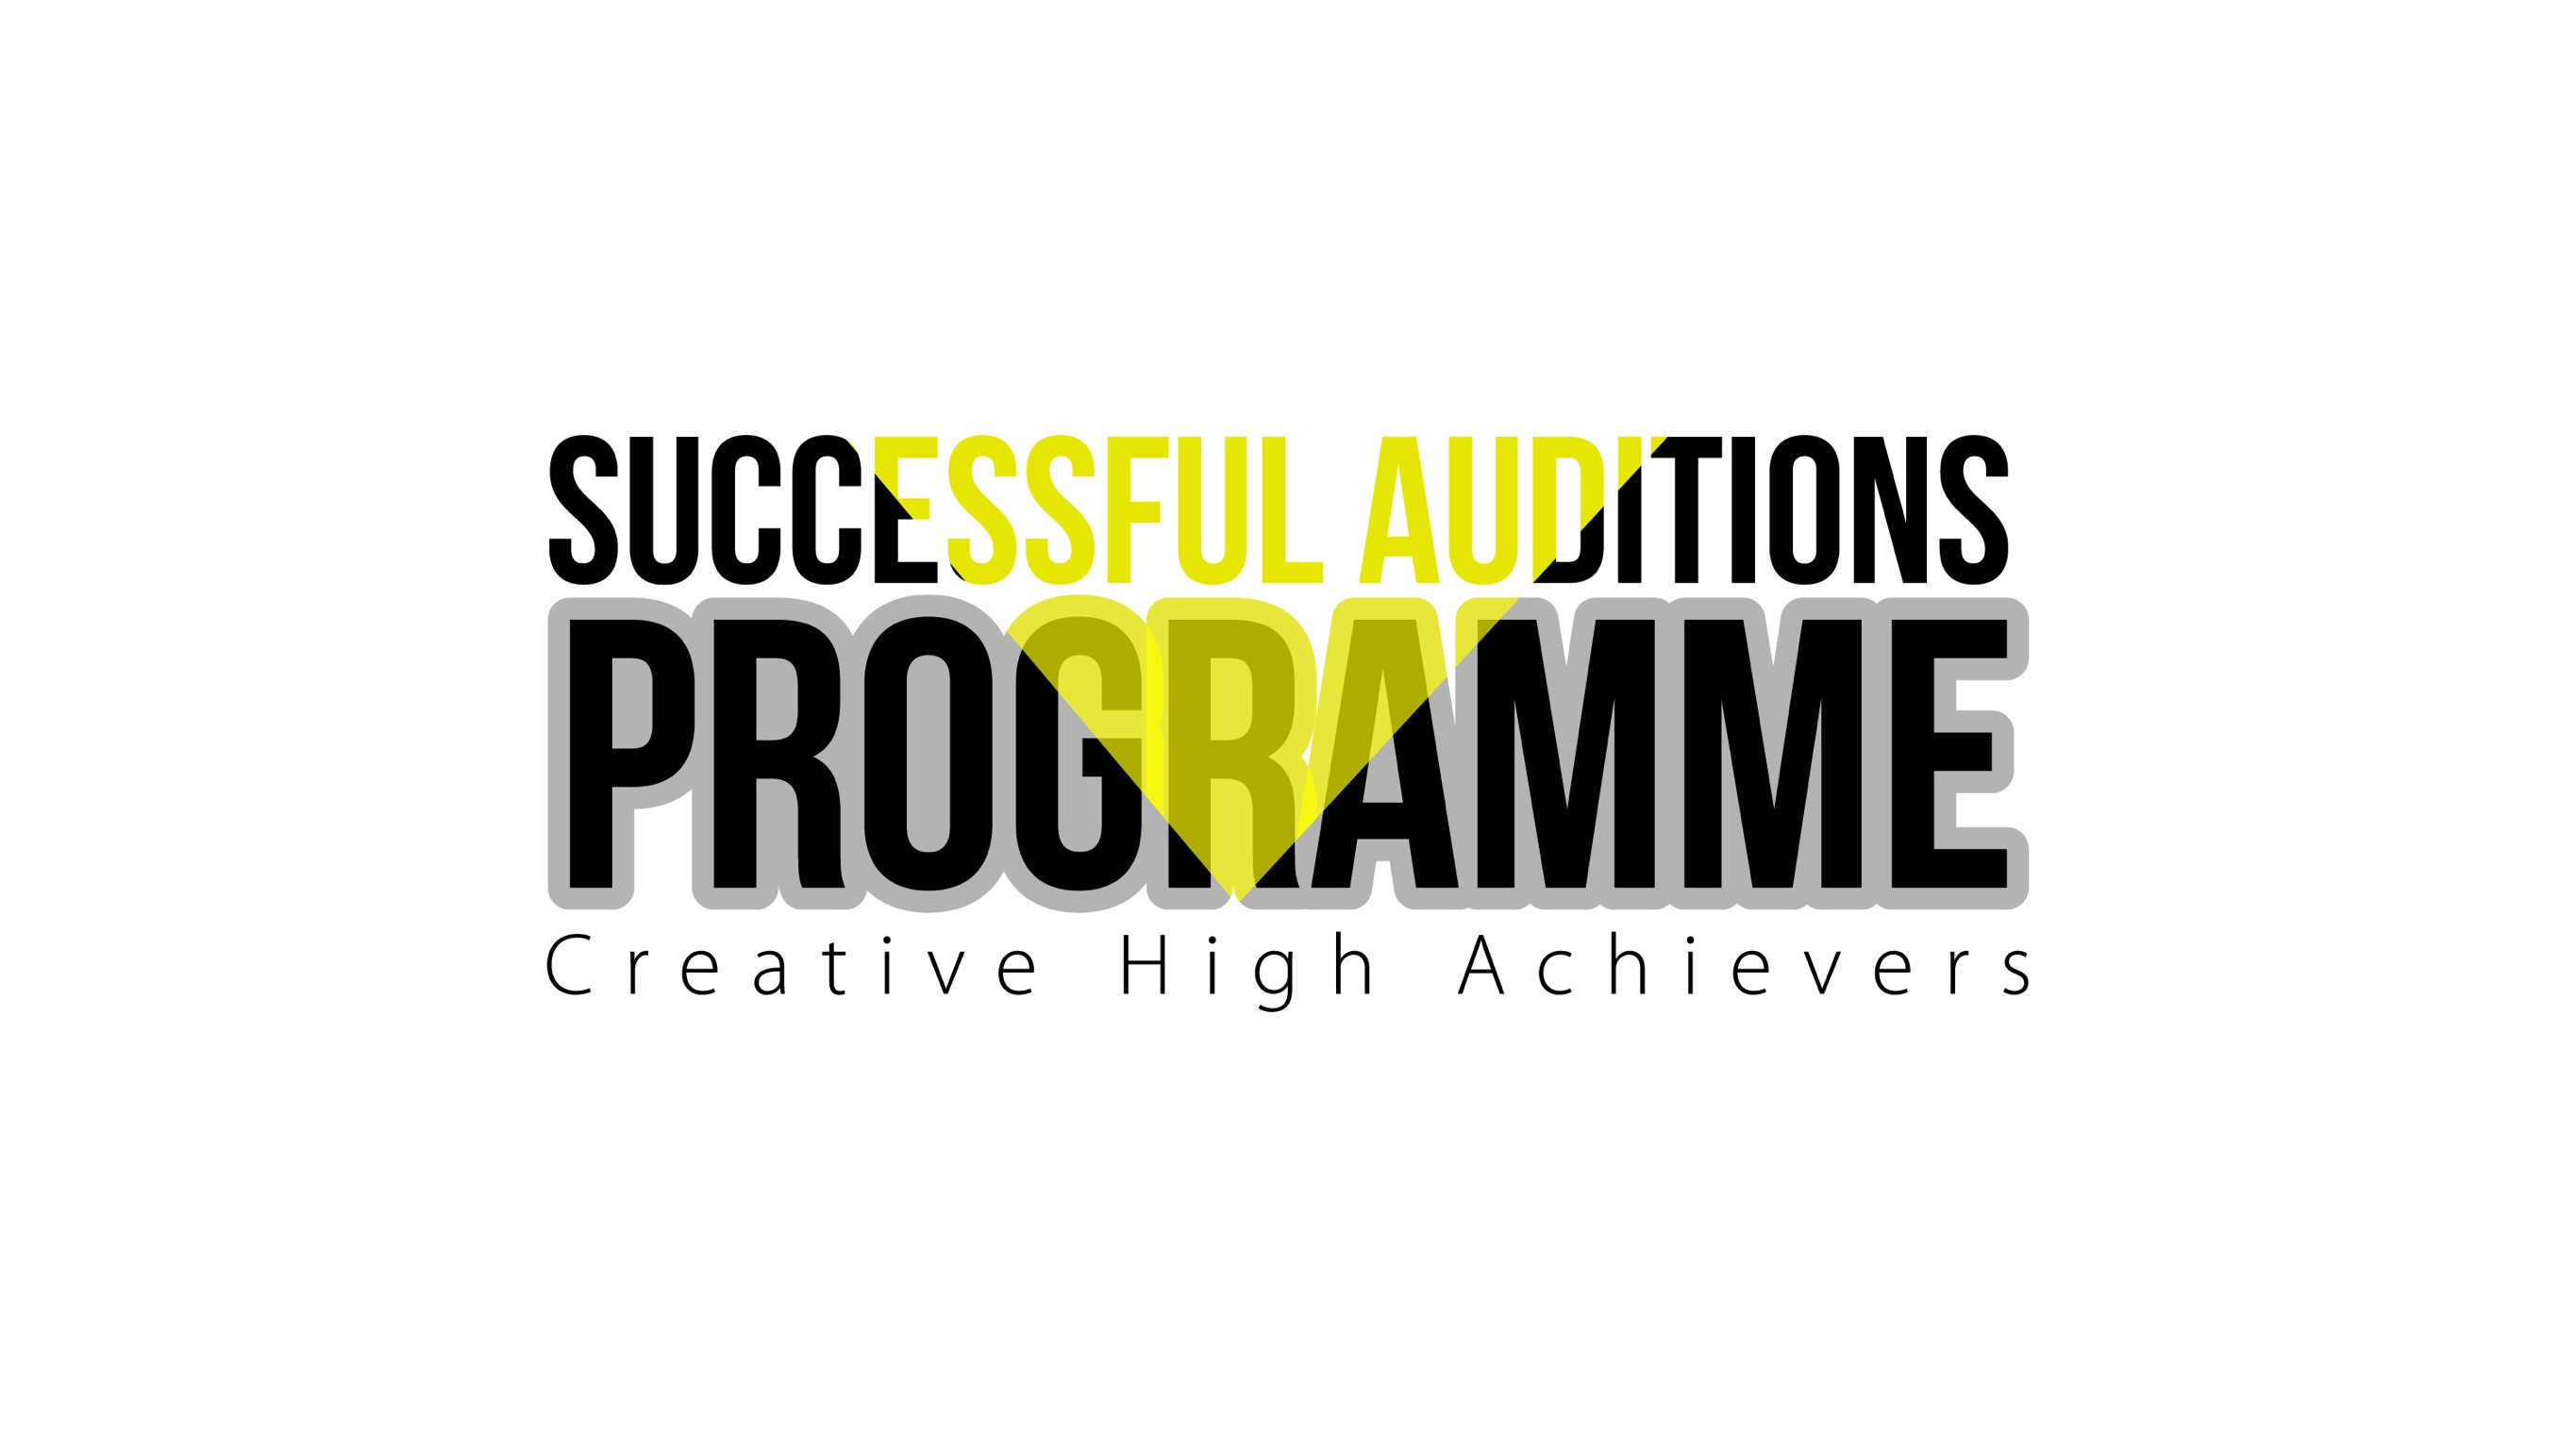 SUCCESSFUL AUDITIONS PROGRAMME